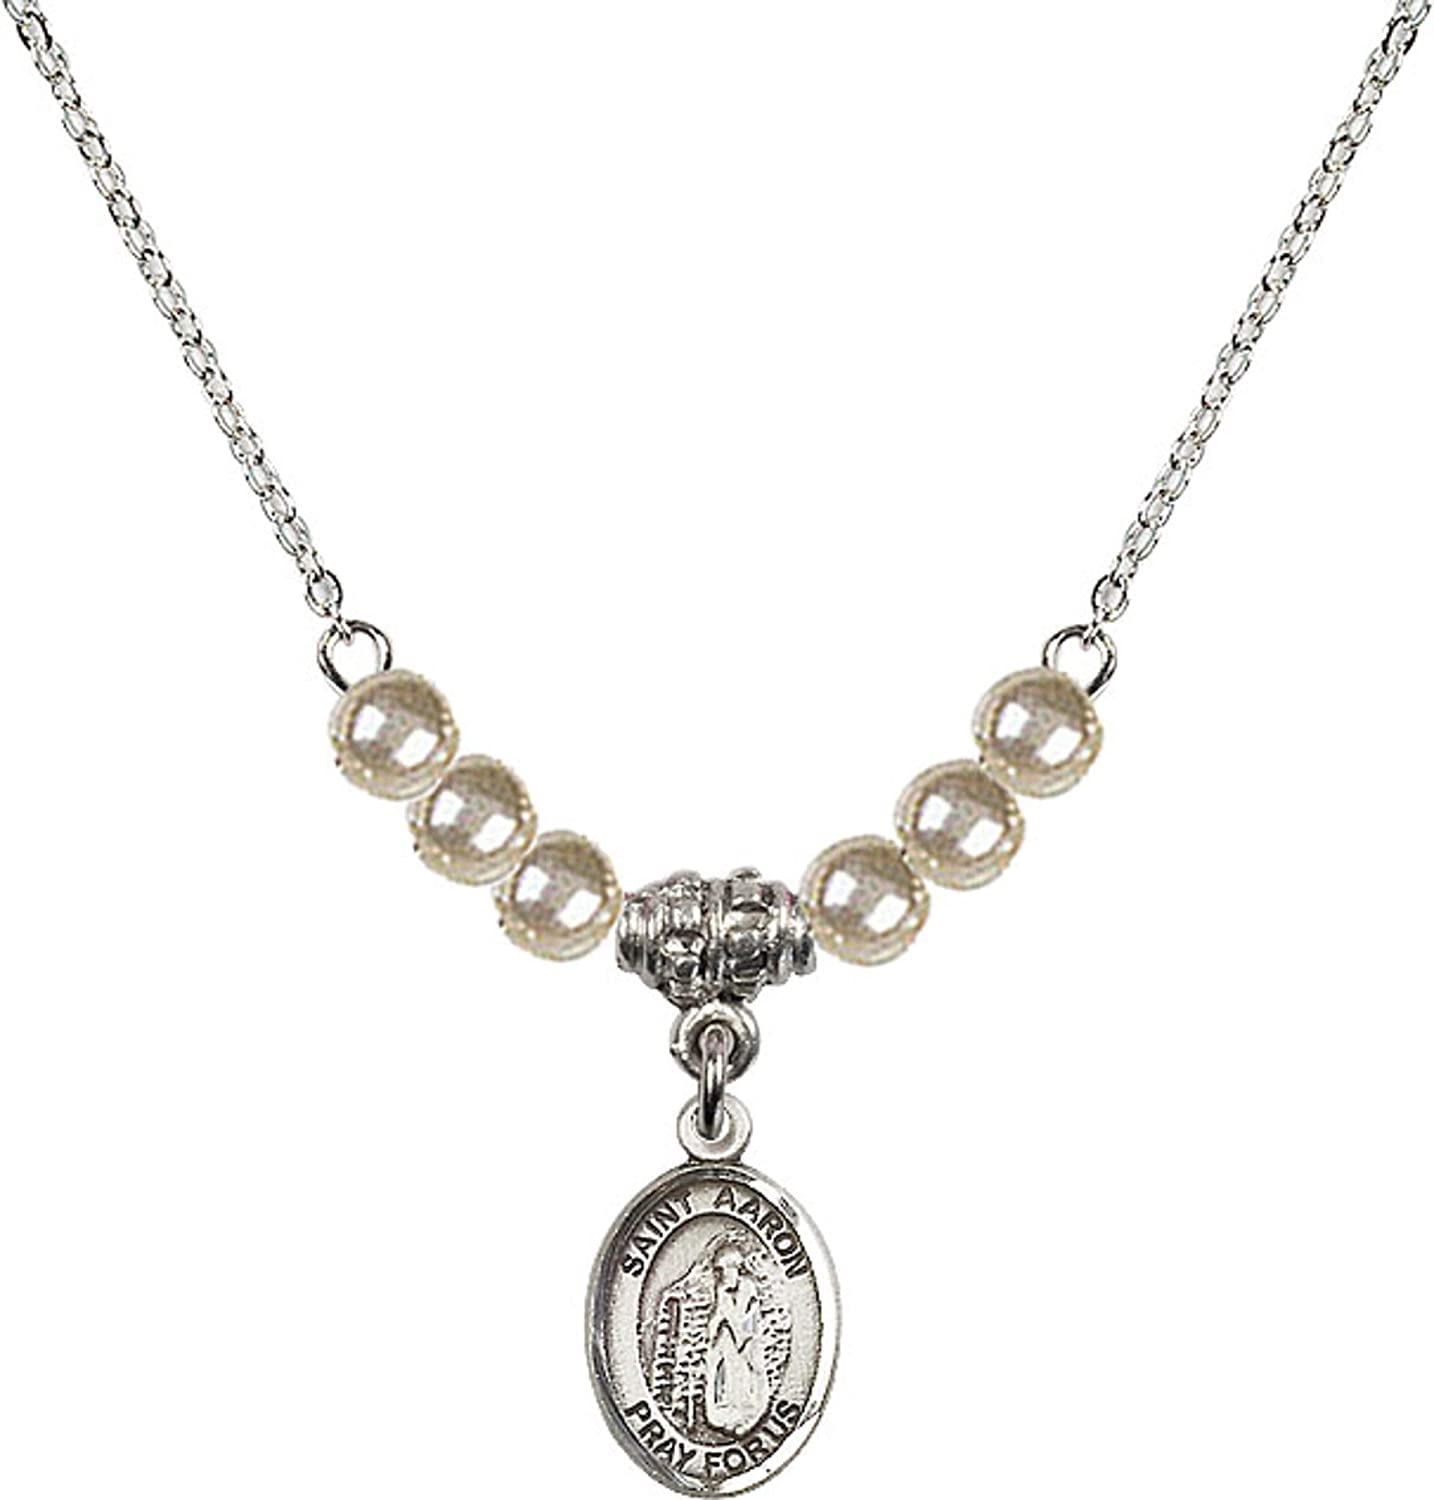 Bonyak Jewelry 18 Inch Rhodium Plated Necklace w// 4mm Faux-Pearl Beads and Saint Aaron Charm